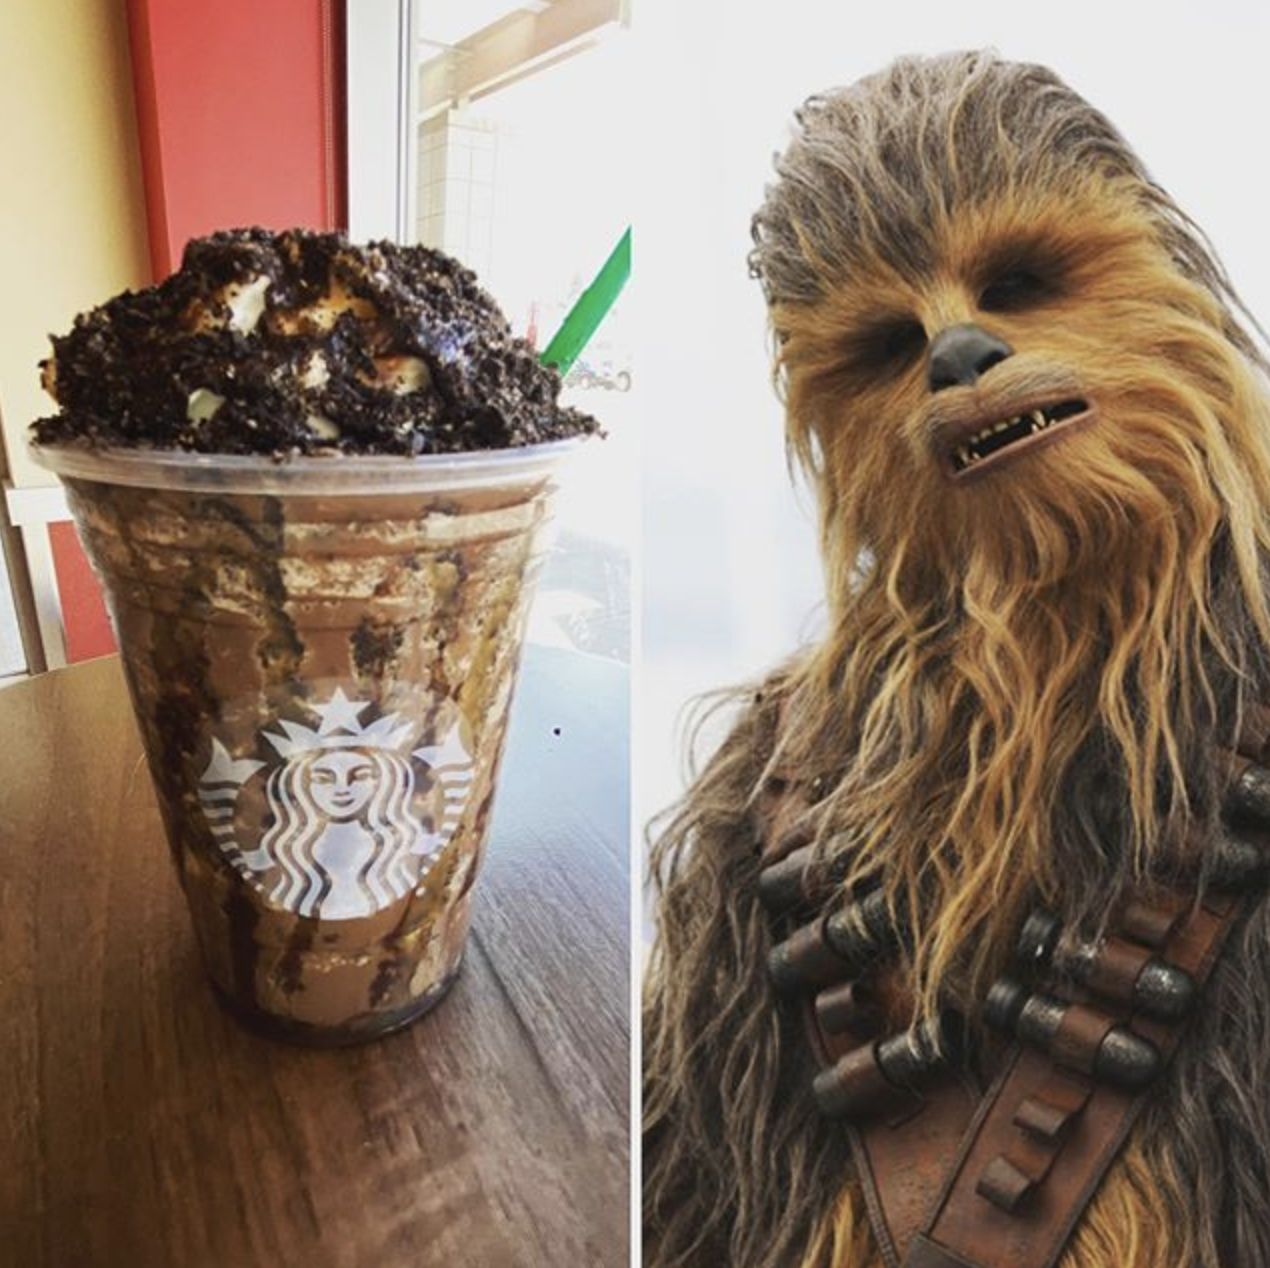 You Can Order a Chewbacca Frappuccino From Starbucks and It's Out of This World